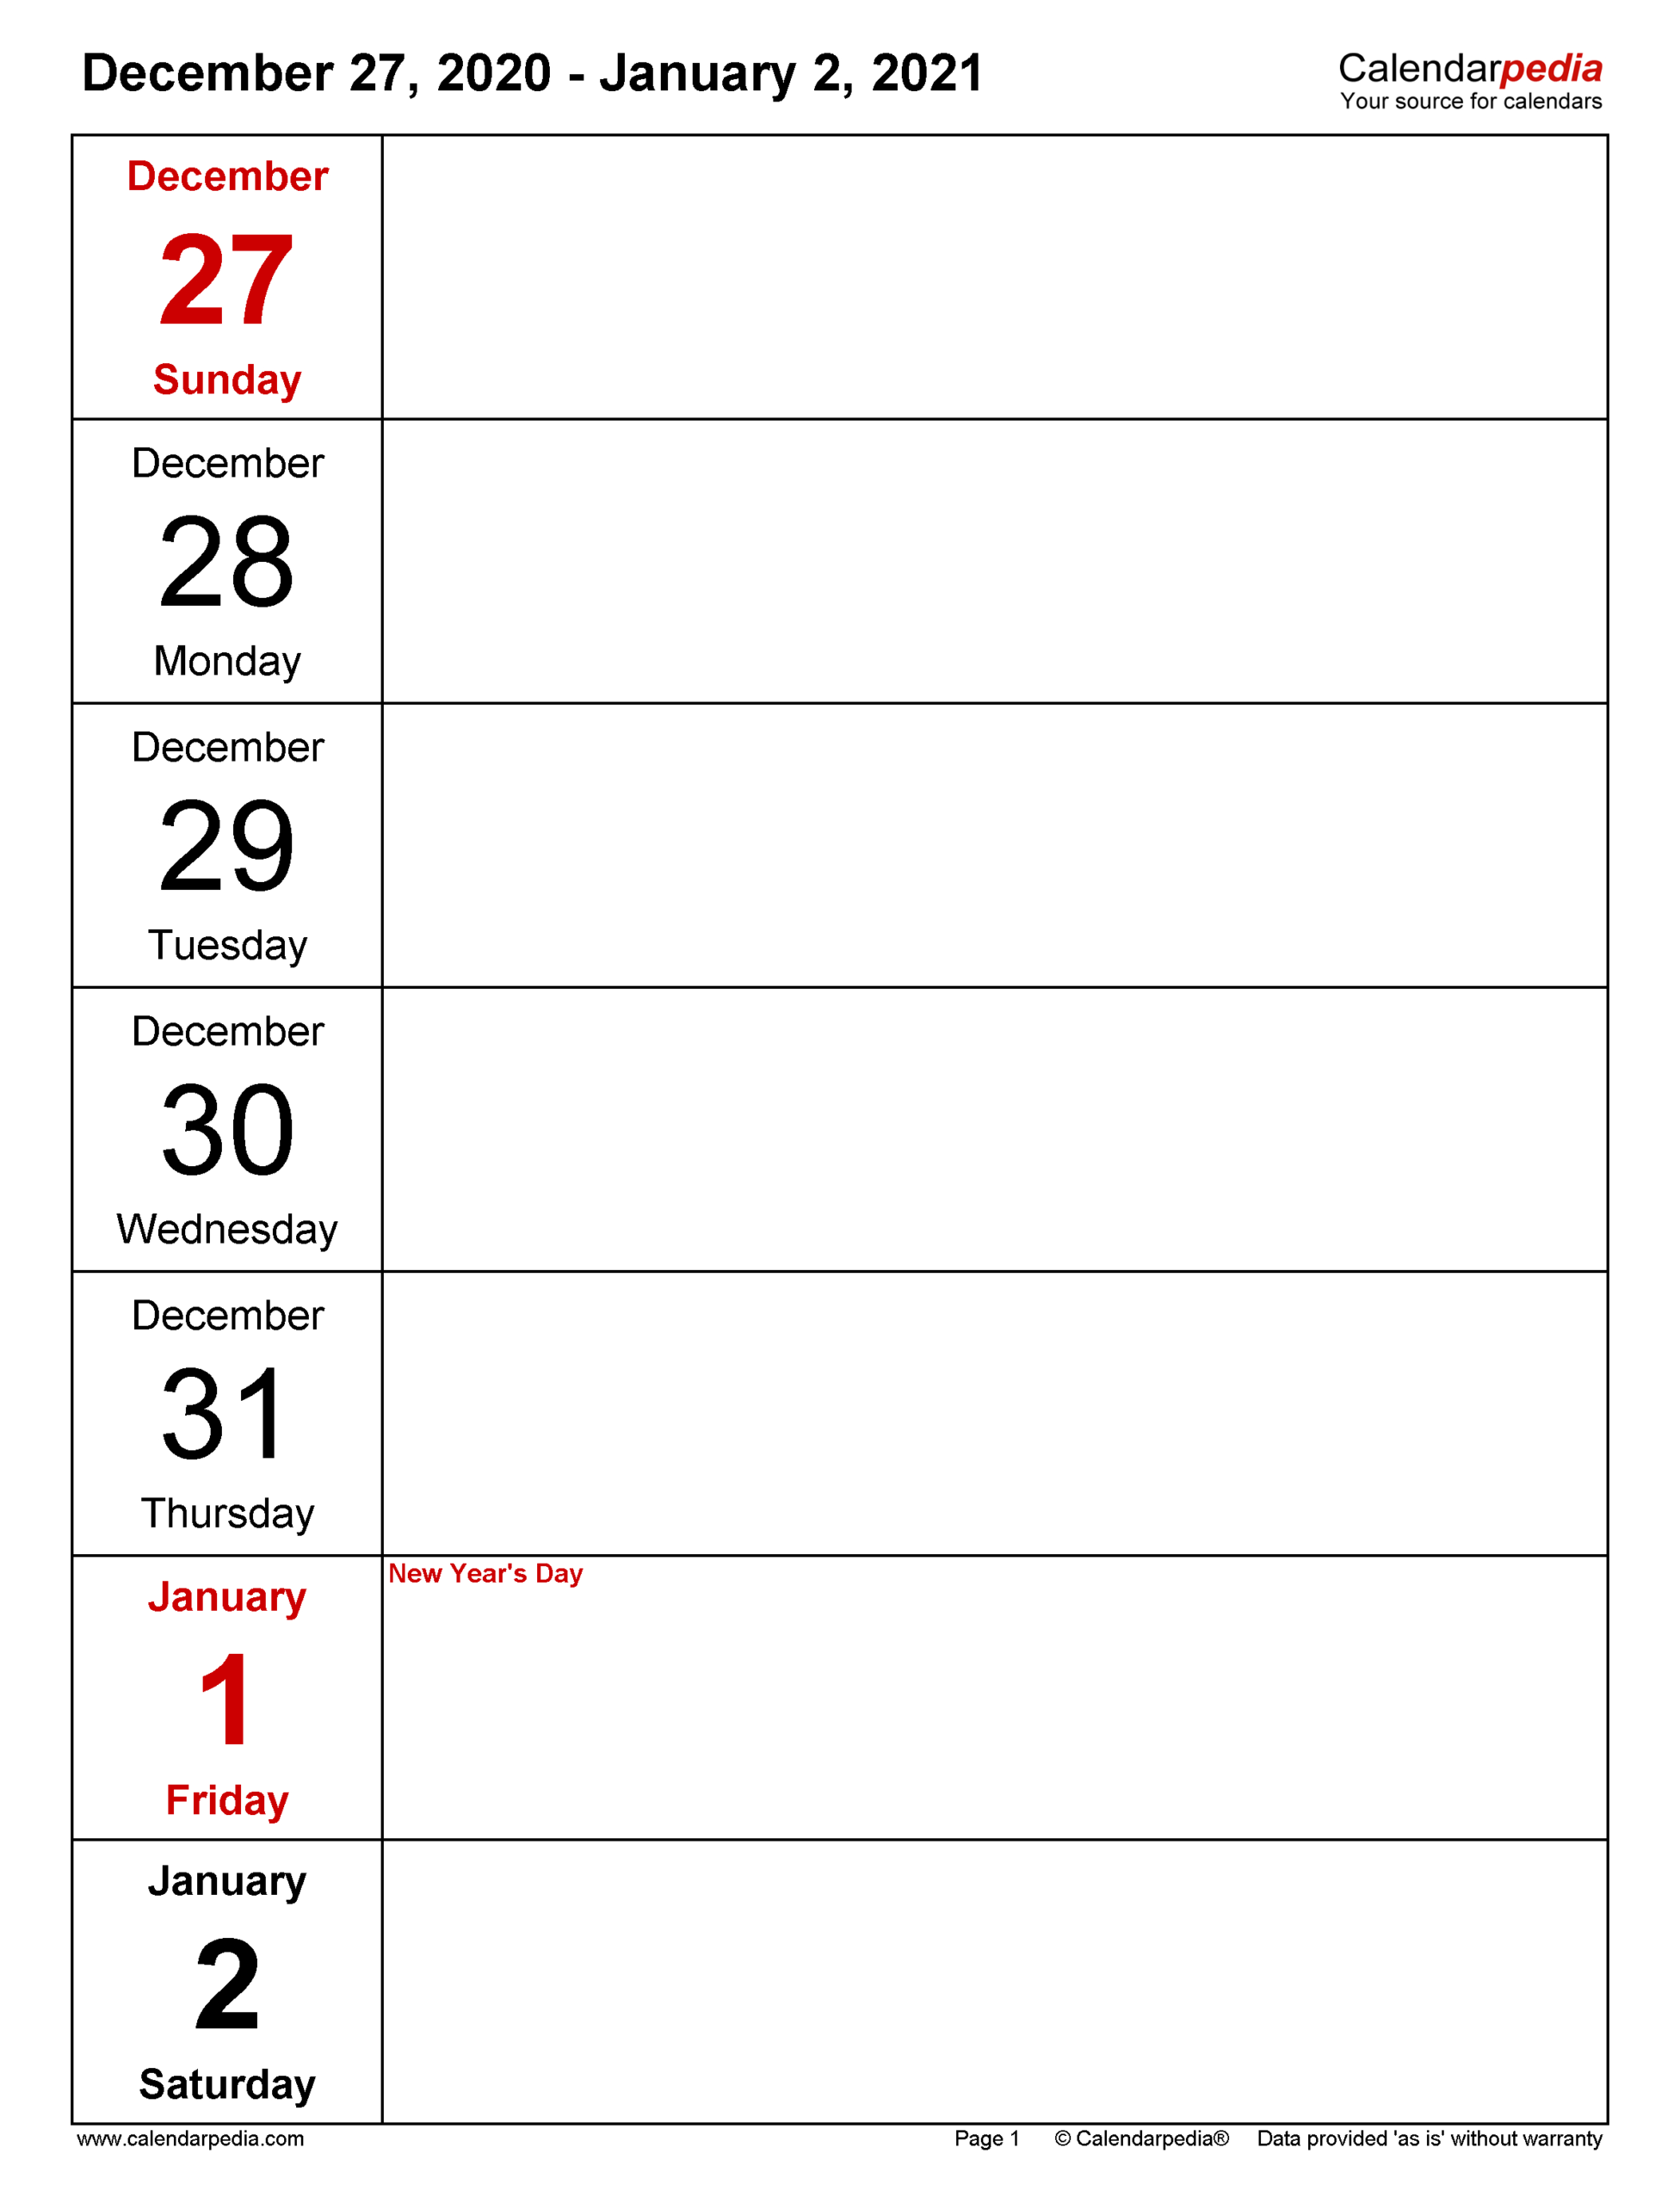 Weekly Calendars 2021 For Pdf - 12 Free Printable Templates